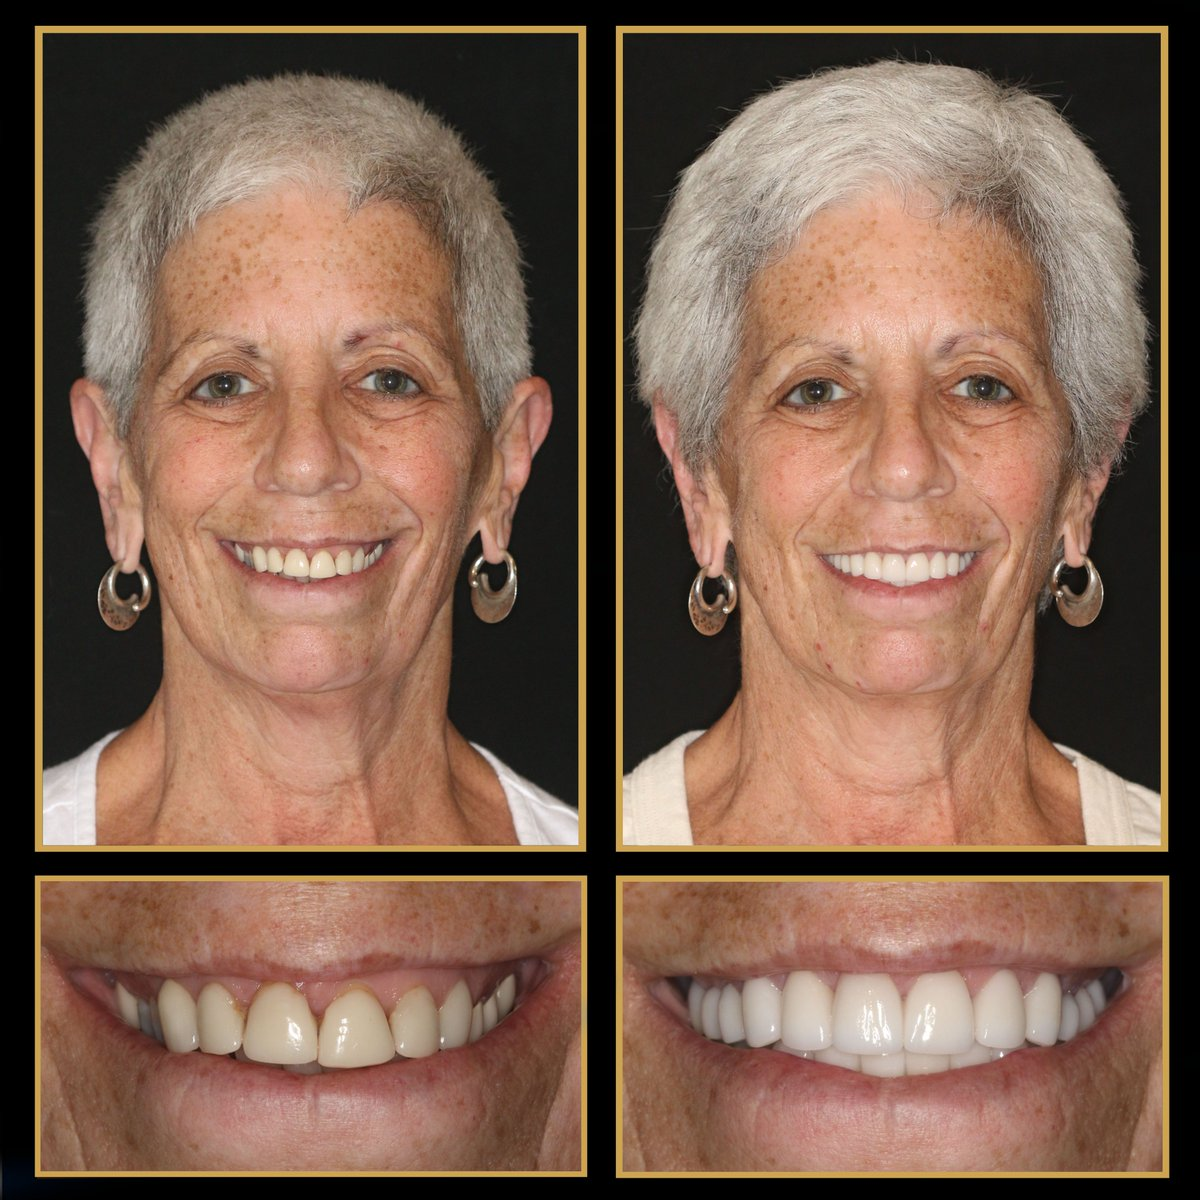 See the difference only a new #smilemakeover can make! Leave it to porcelain #veneers, crowns, bridges, #dentalimplants and #reconstructivedentistry to create that ultimate wow factor! http://www.TheCosmeticDentistsOfAustin.com  #CosmeticDentistry #CosmeticDentist #ATX #TransformationTuesdaypic.twitter.com/A8NhaouoB9